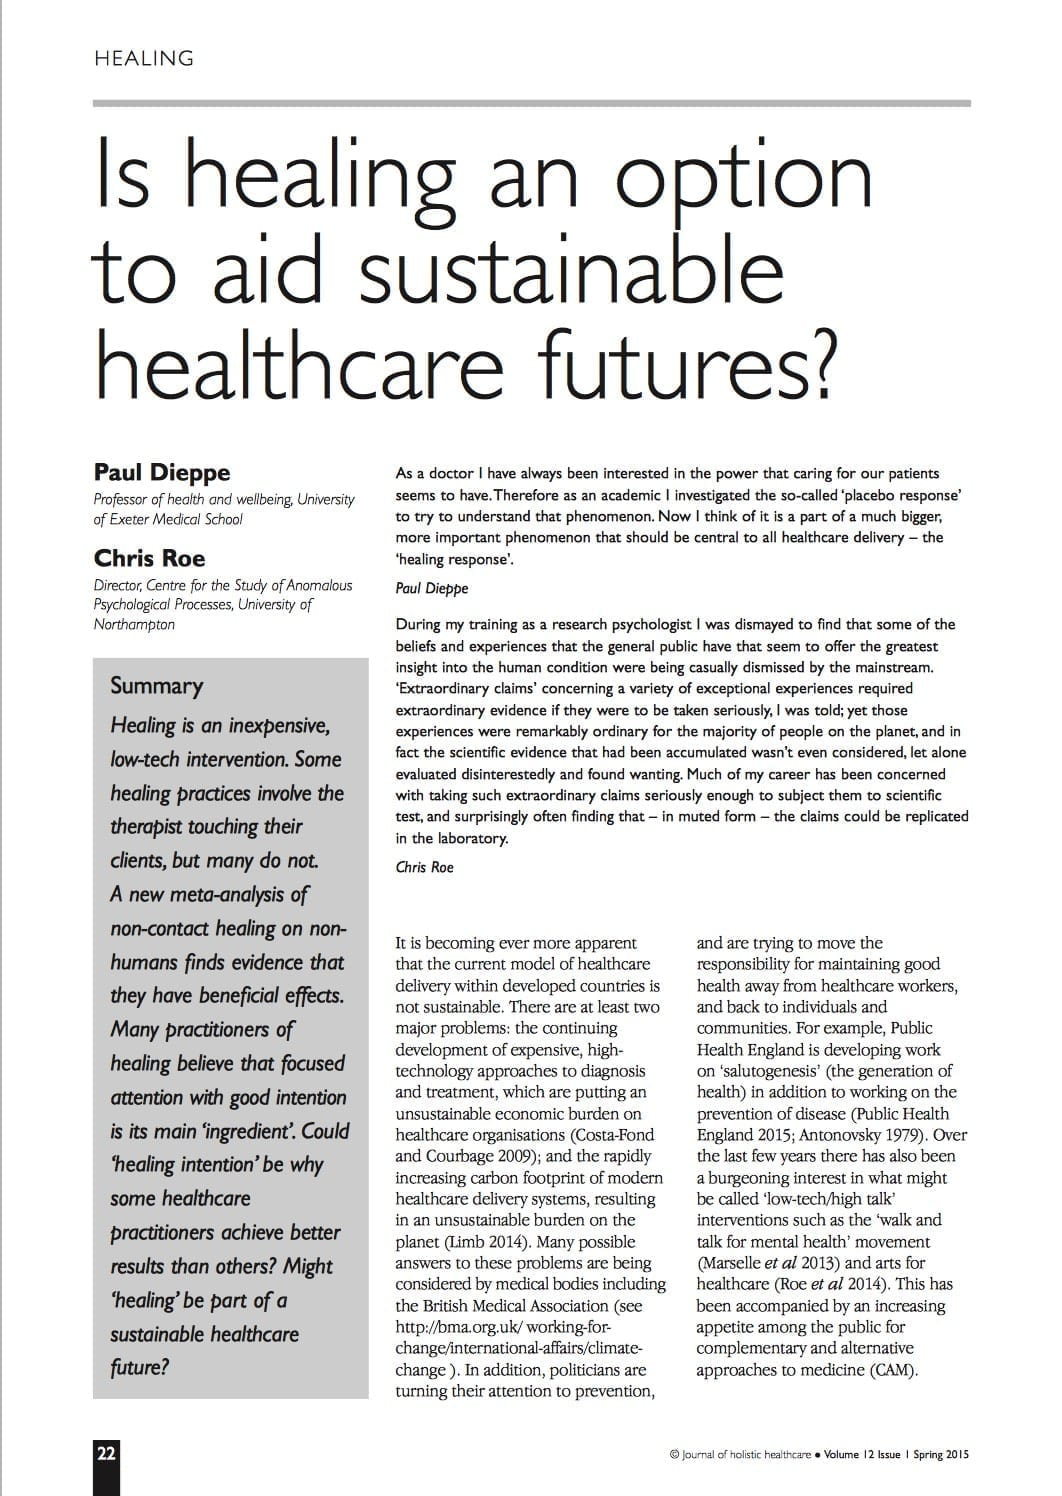 Is healing an option to aid sustainable healthcare futures?